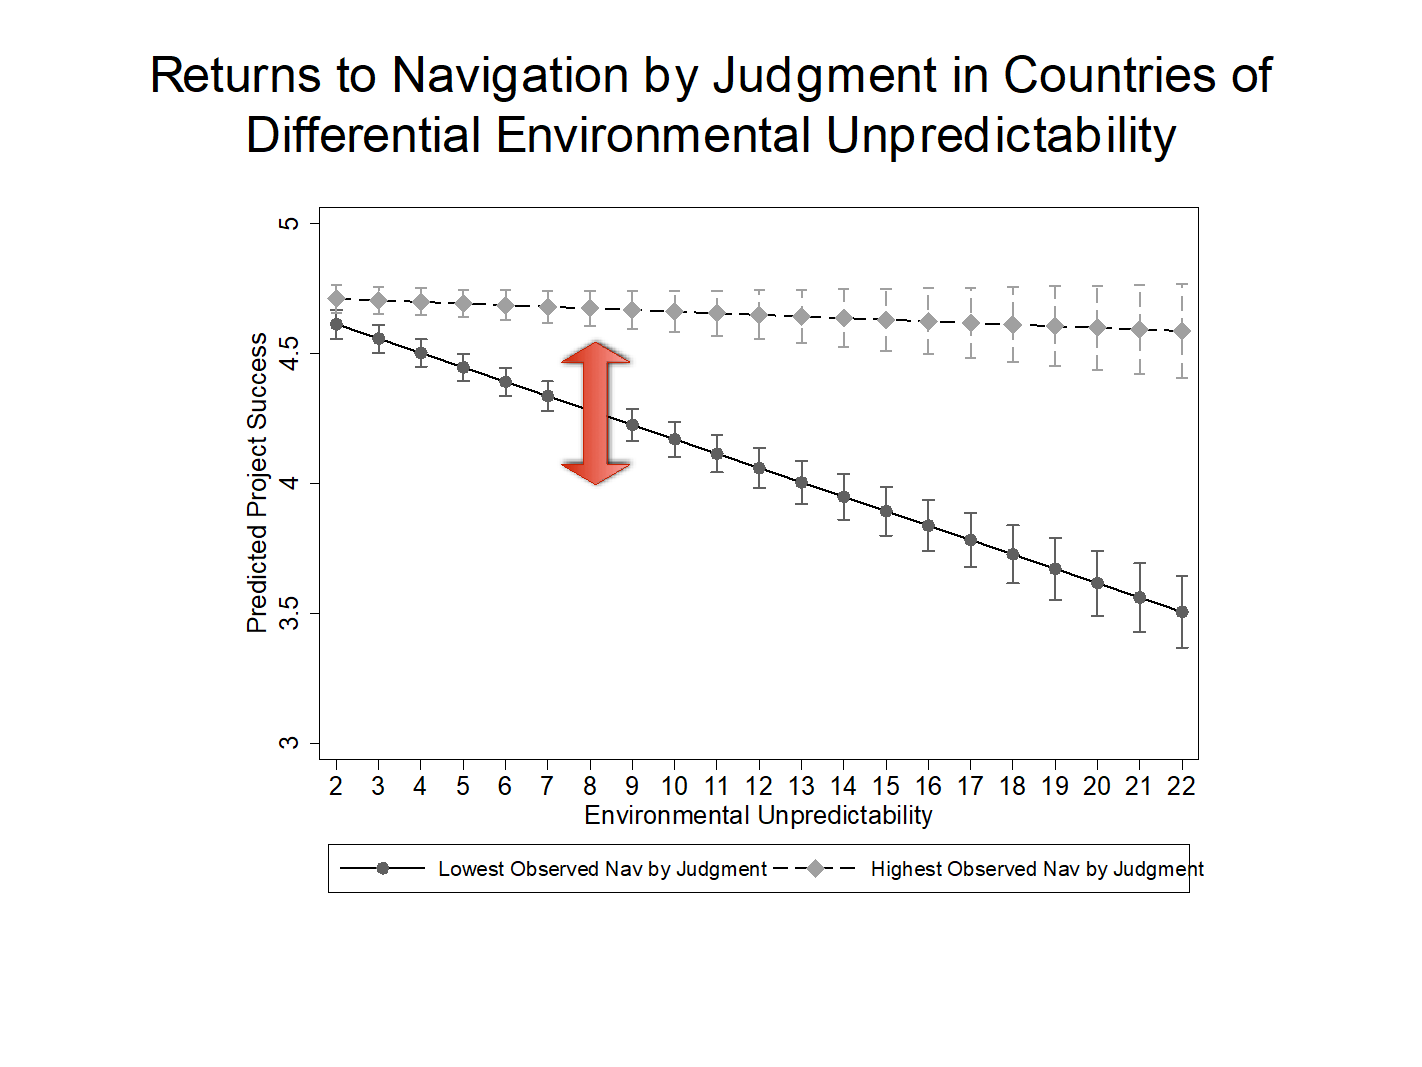 A graph showing returns to navigation by judgement in countries of differential environmental unpredictability